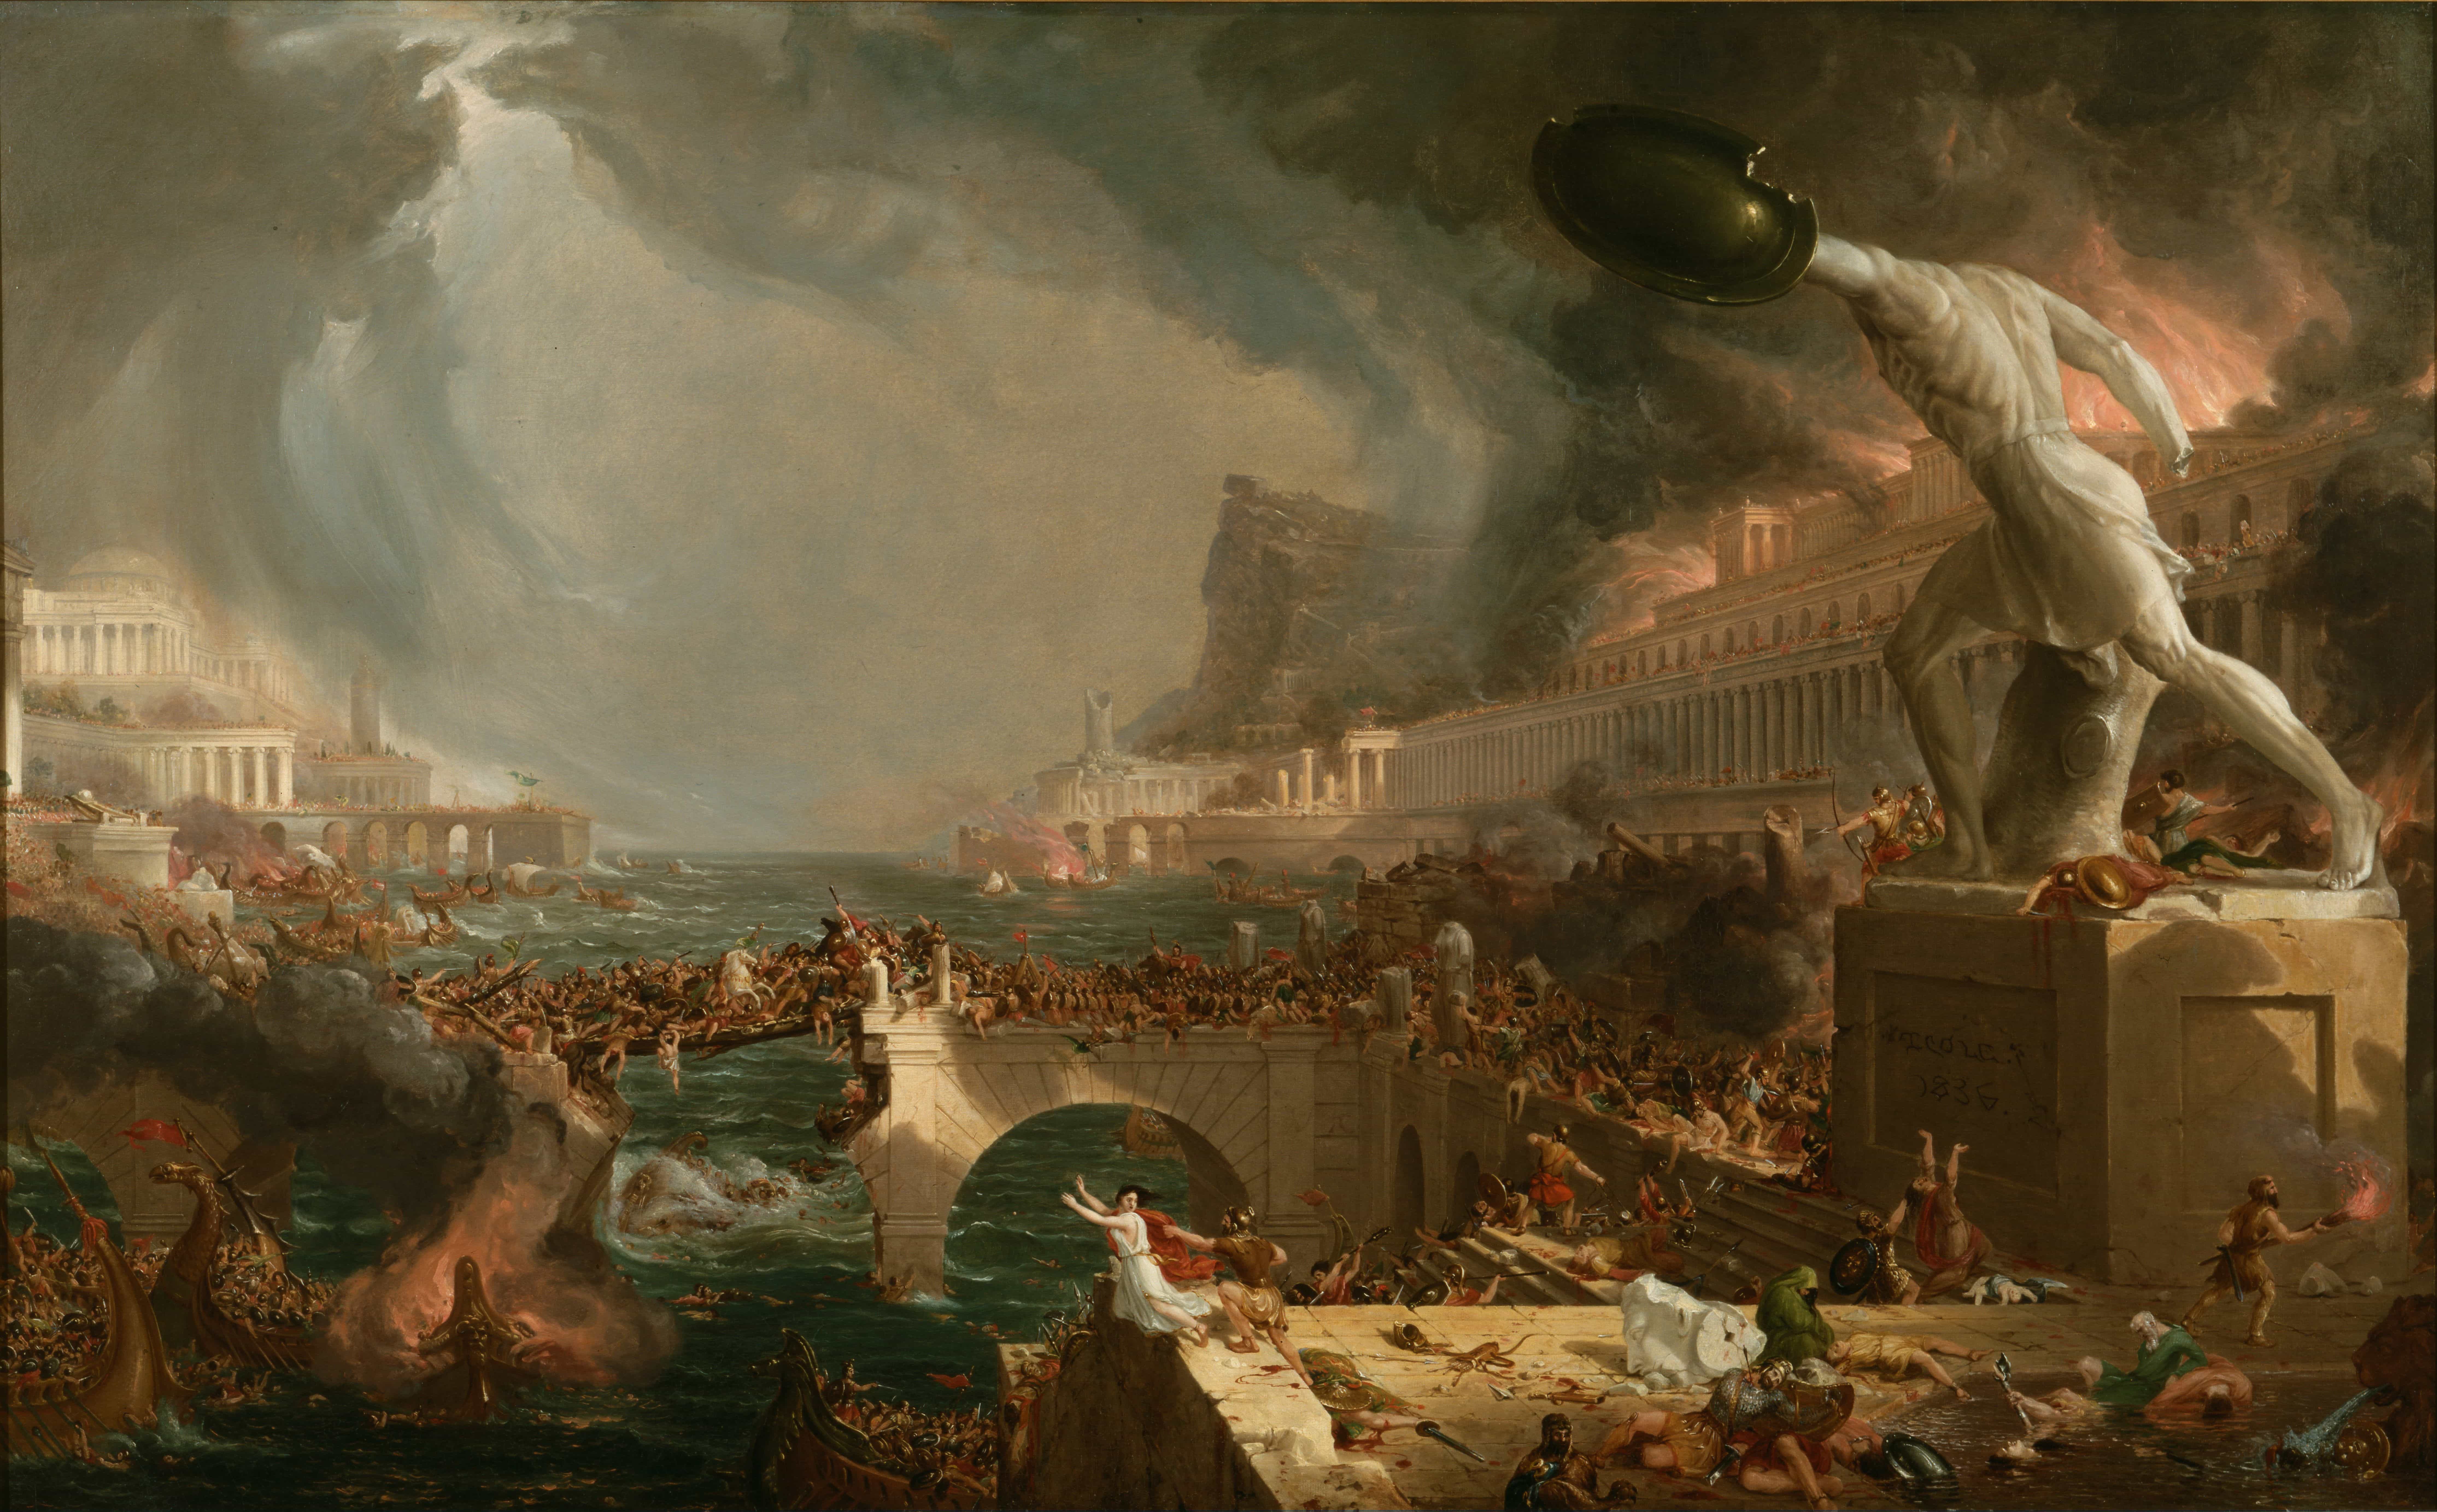 Fall-of-Rome-Course-of-Empire